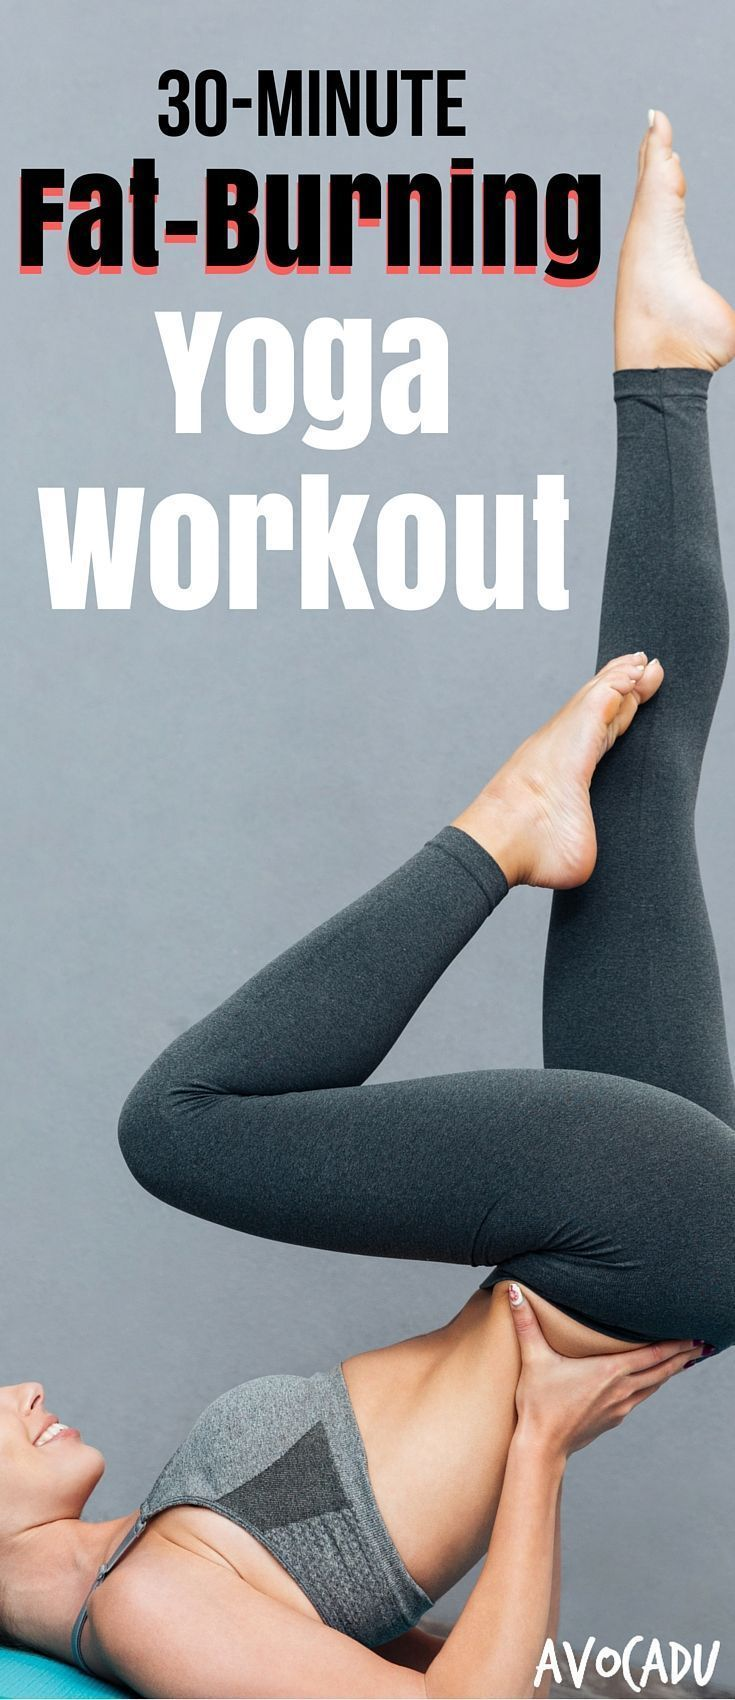 30-Minute Fat-Burning Yoga Workout | Yoga for Weight Loss | Yoga Workout for Beg...